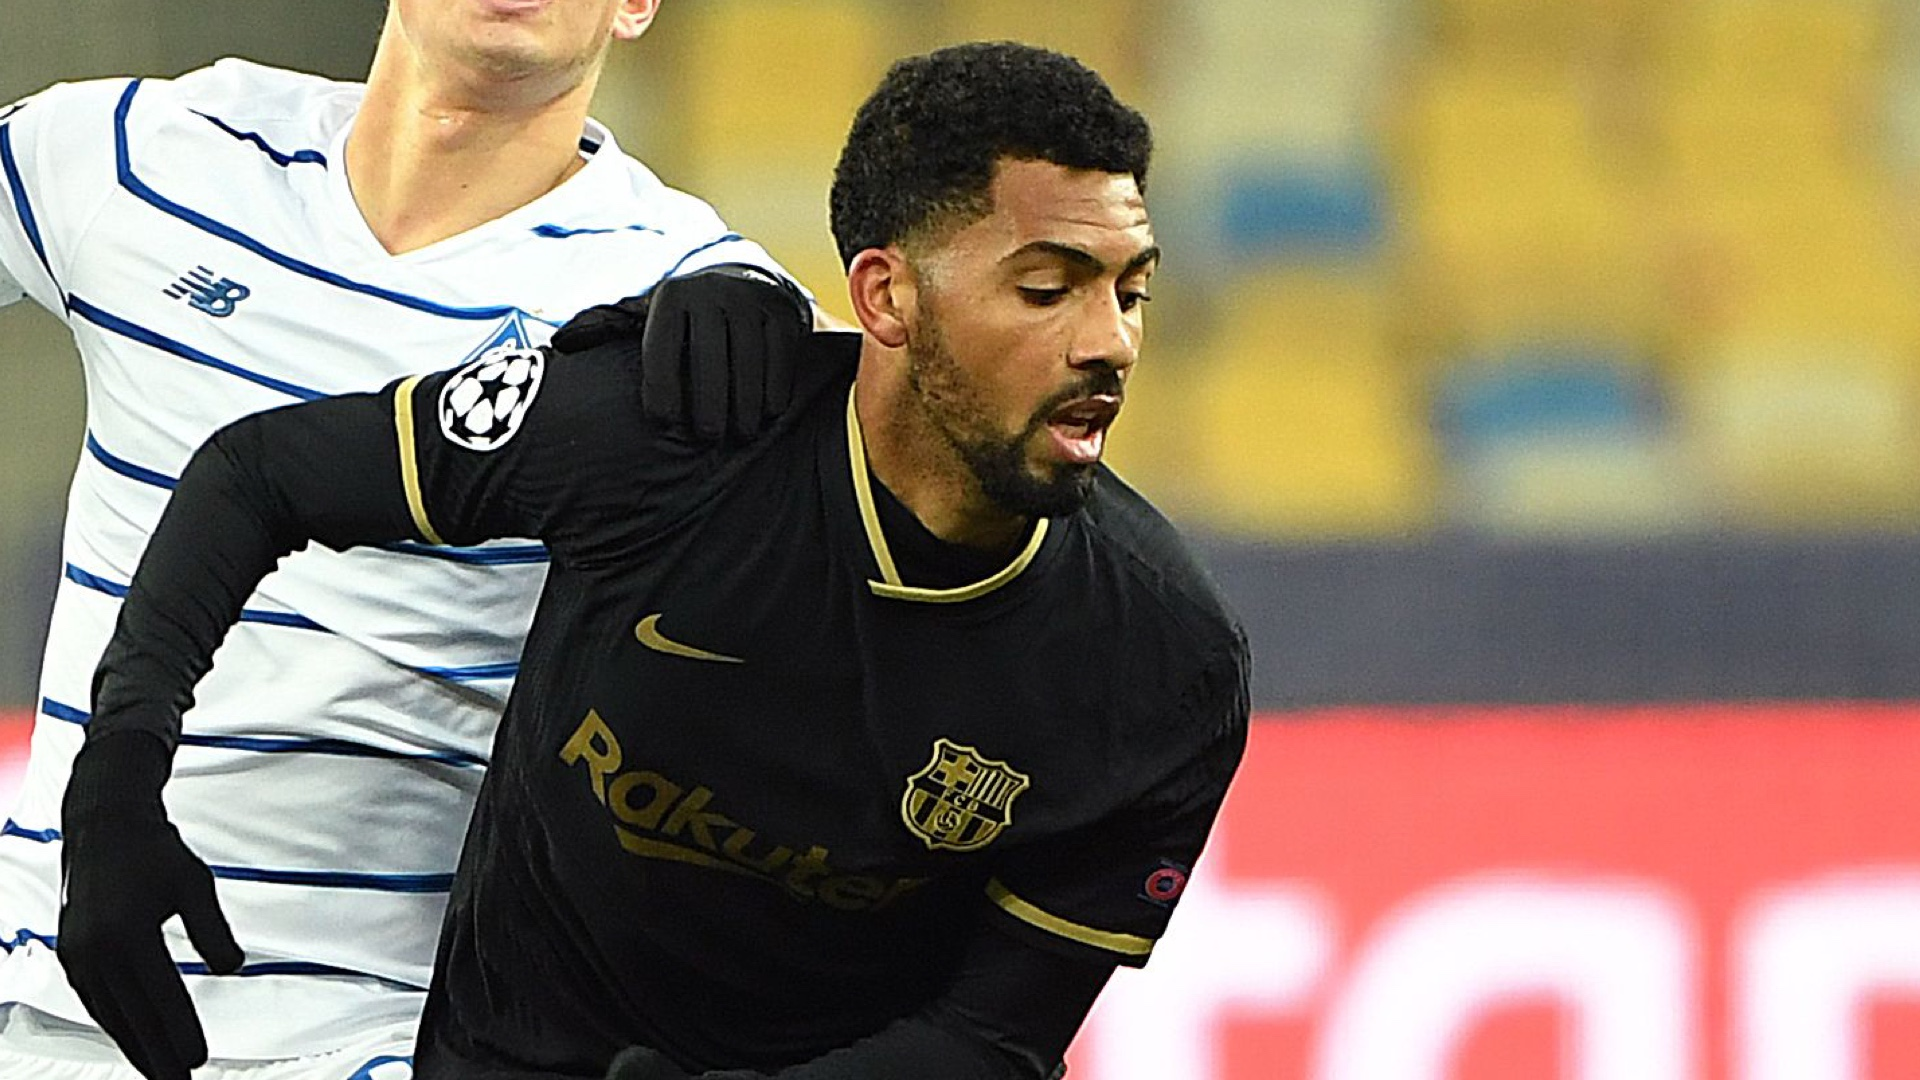 'They didn't treat me as a footballer' - Barcelona blasted by Matheus Fernandes over shock contract call